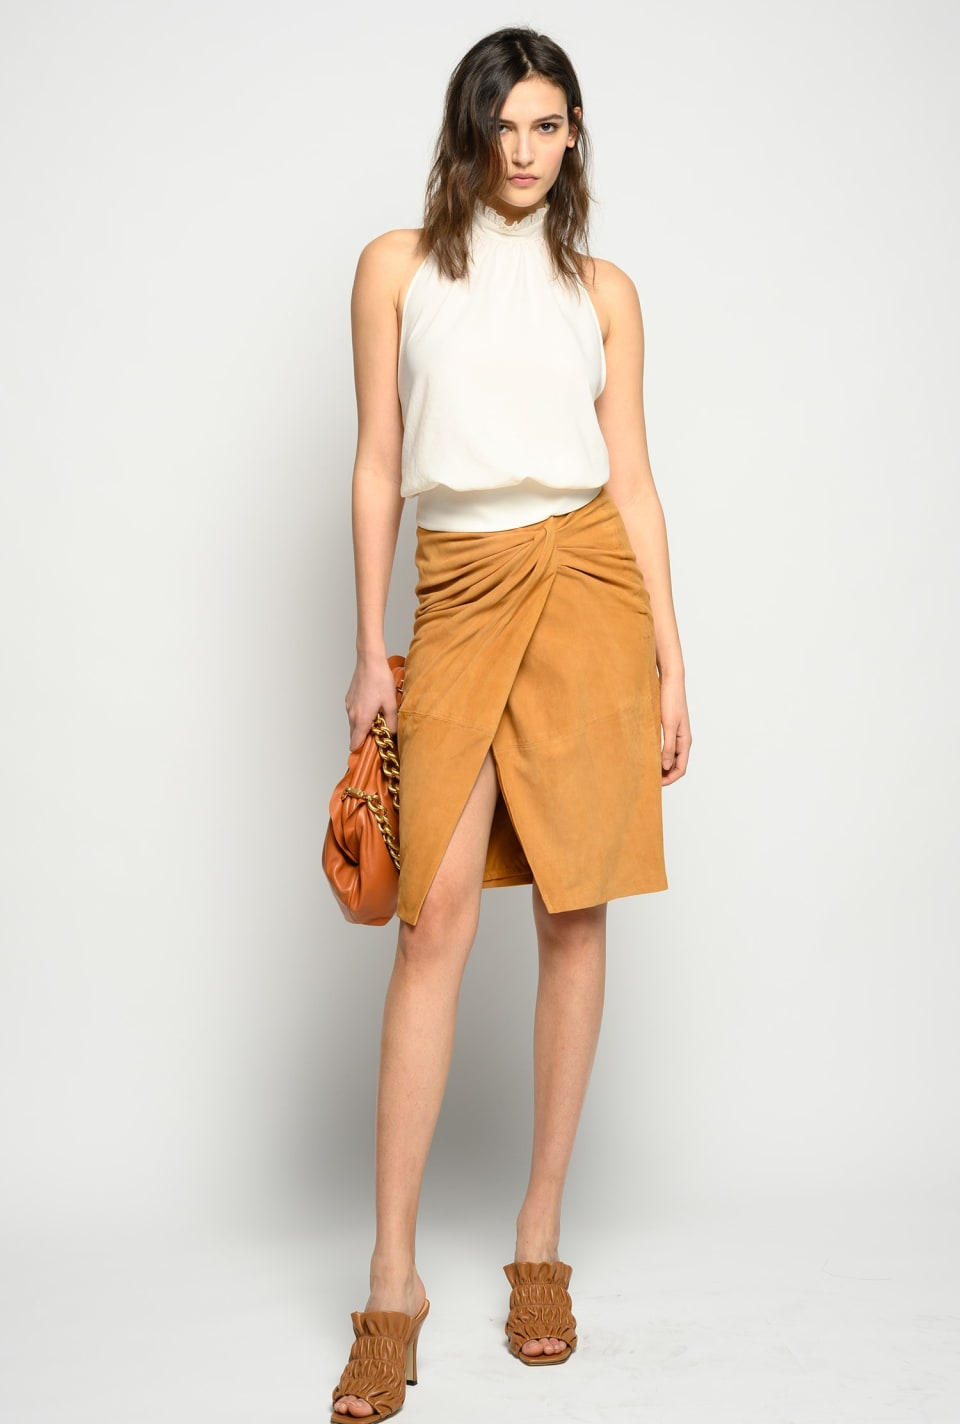 Gonna in suede - Pinko